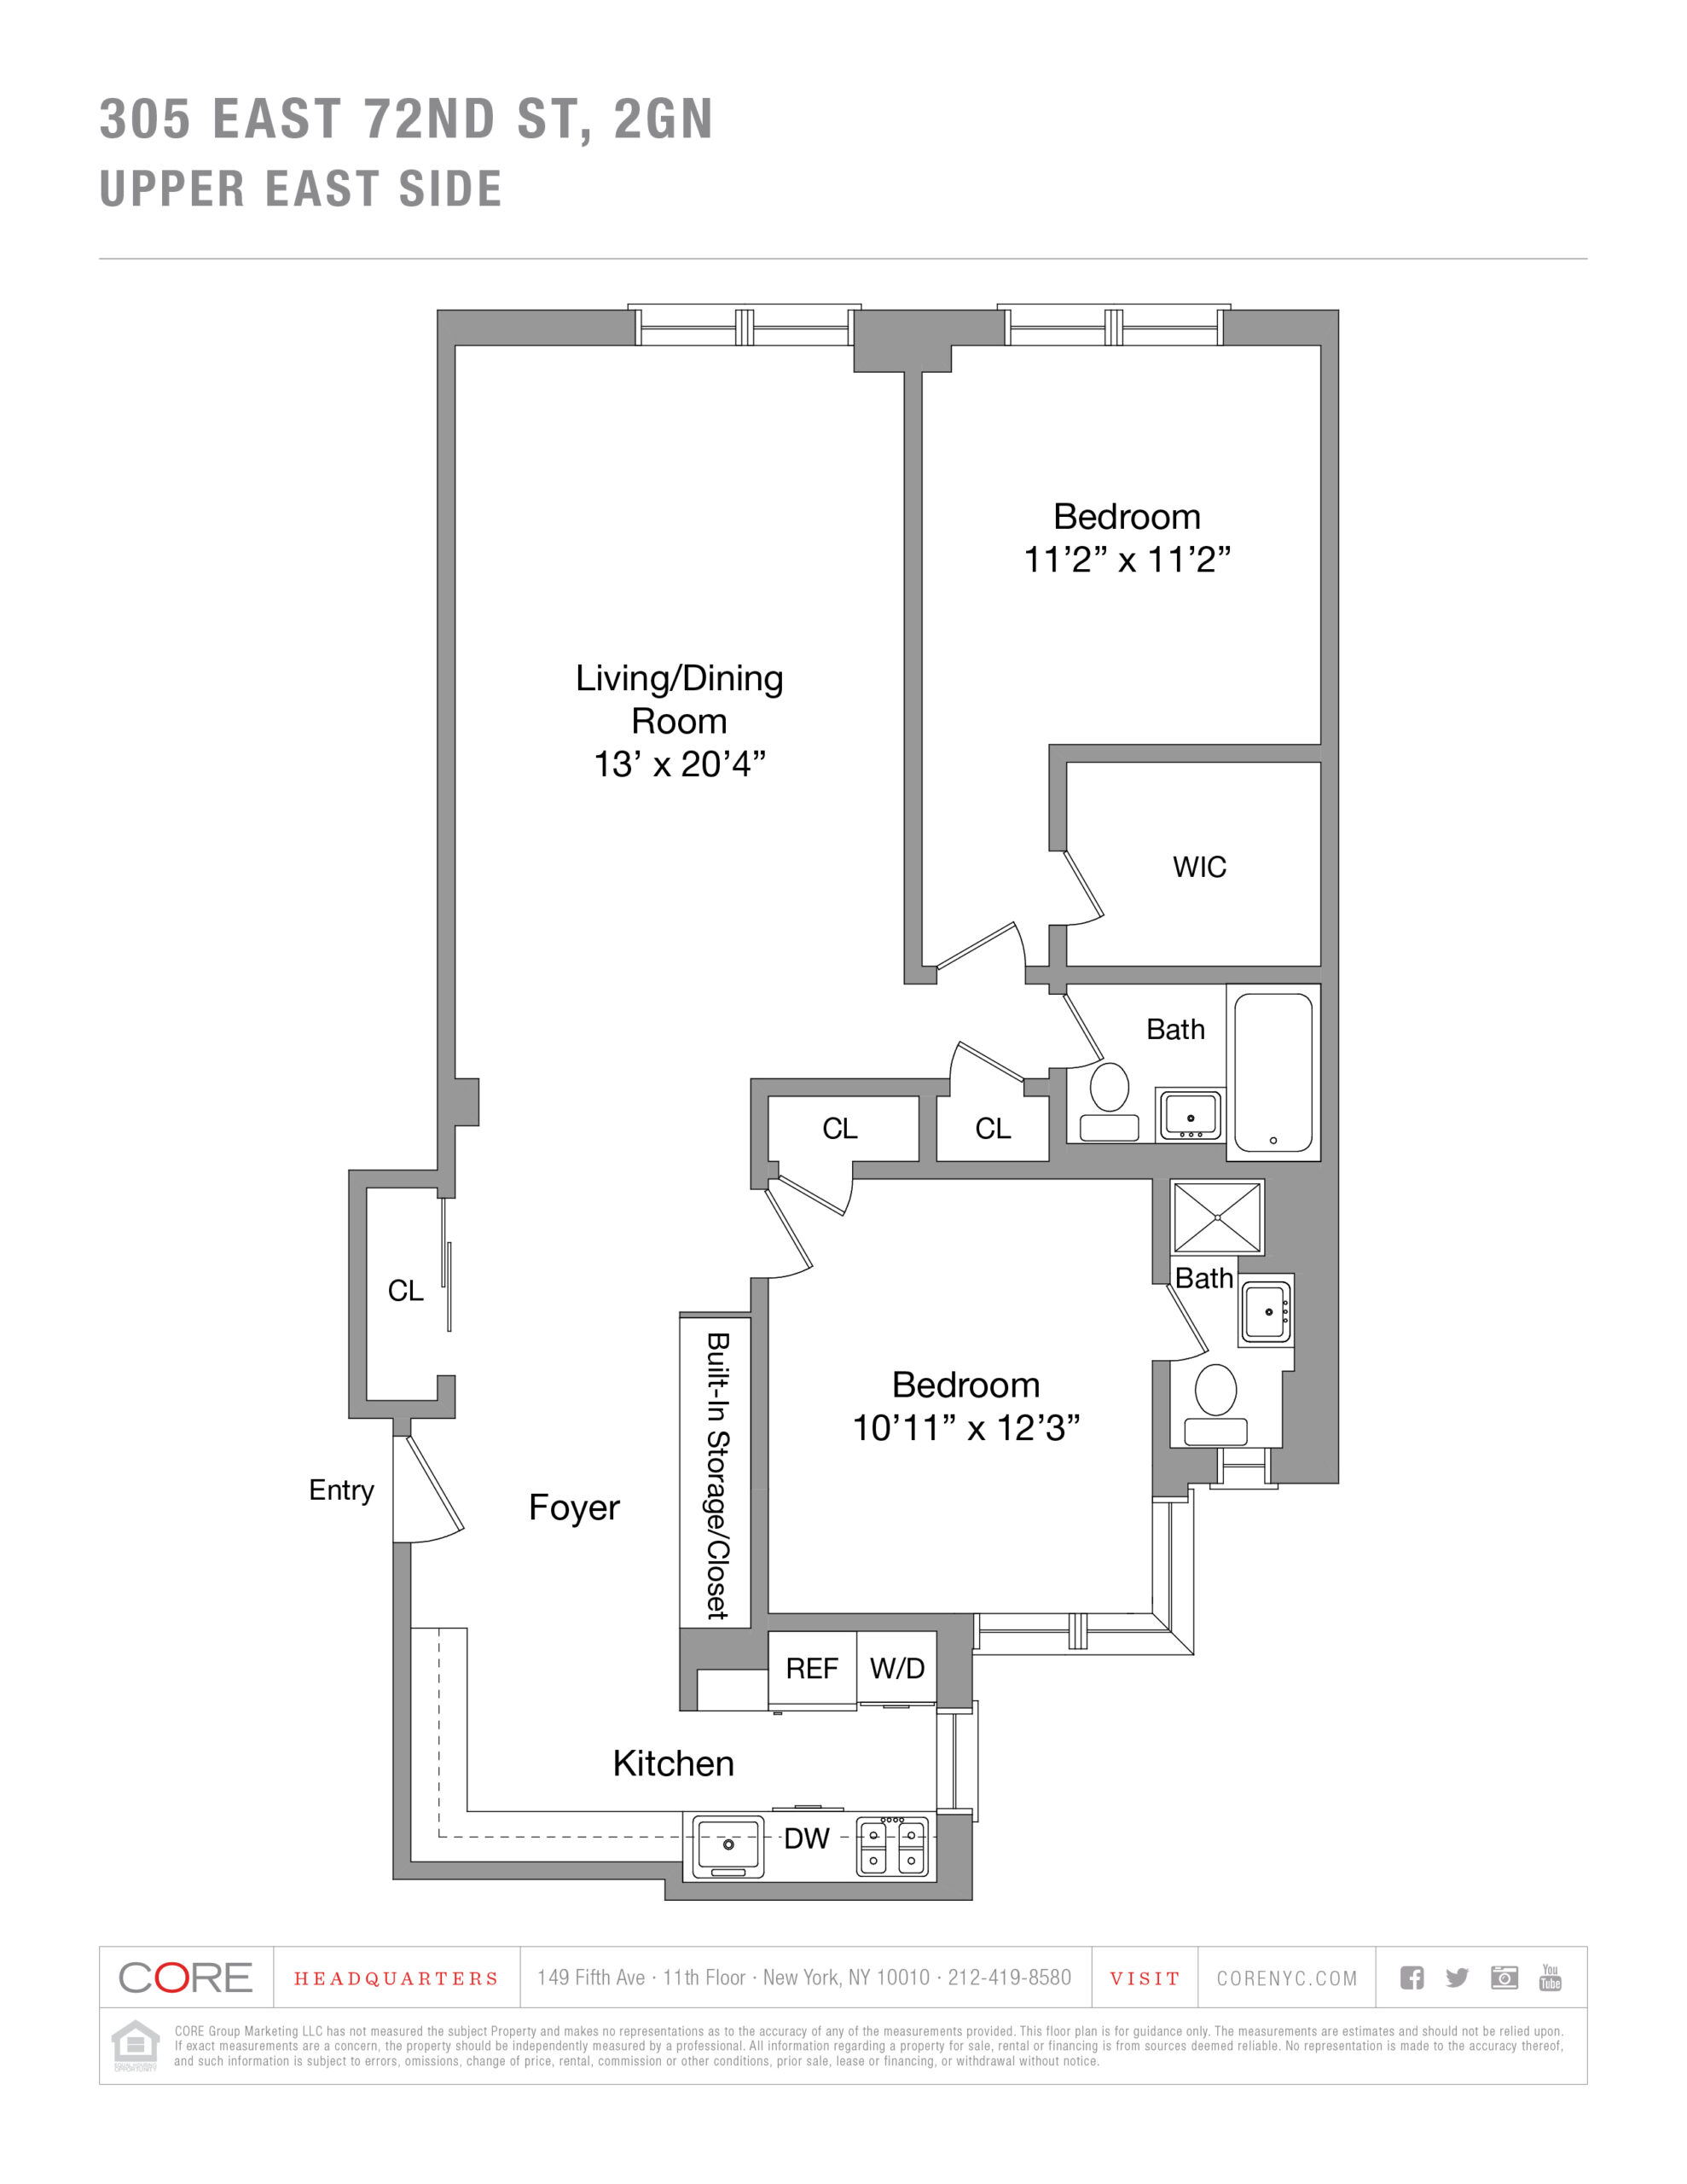 305 East 72nd St. 2GN, New York, NY 10021